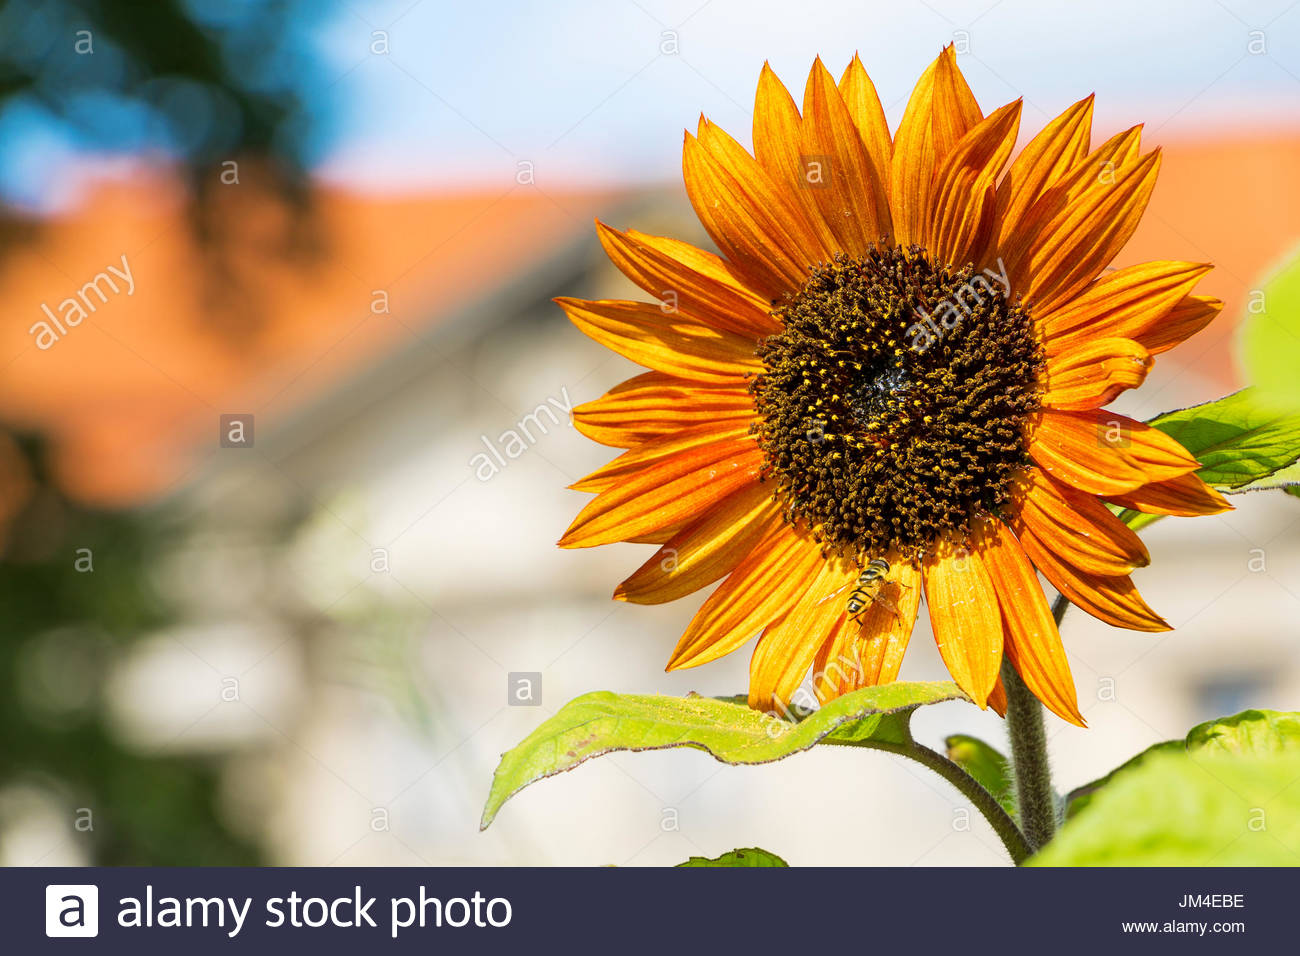 Flower photography contemporary flowers sunflower plant yellow flower photography contemporary flowers sunflower plant yellow flowers flowers with sunlight beautiful flowers close up izmirmasajfo